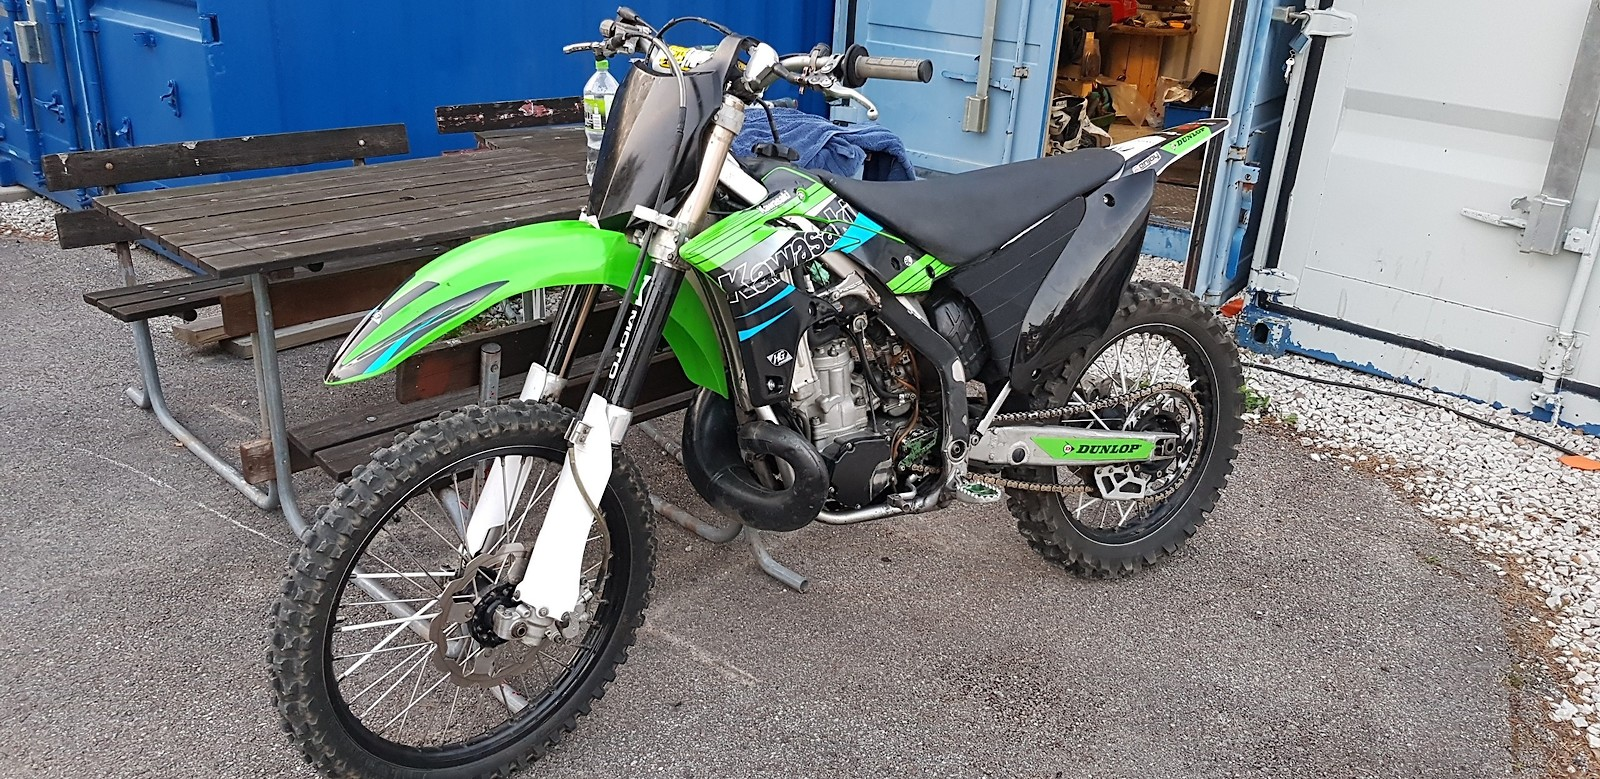 My brothers old kx. Did buy it from him and gonna get clean up and ready to rip.